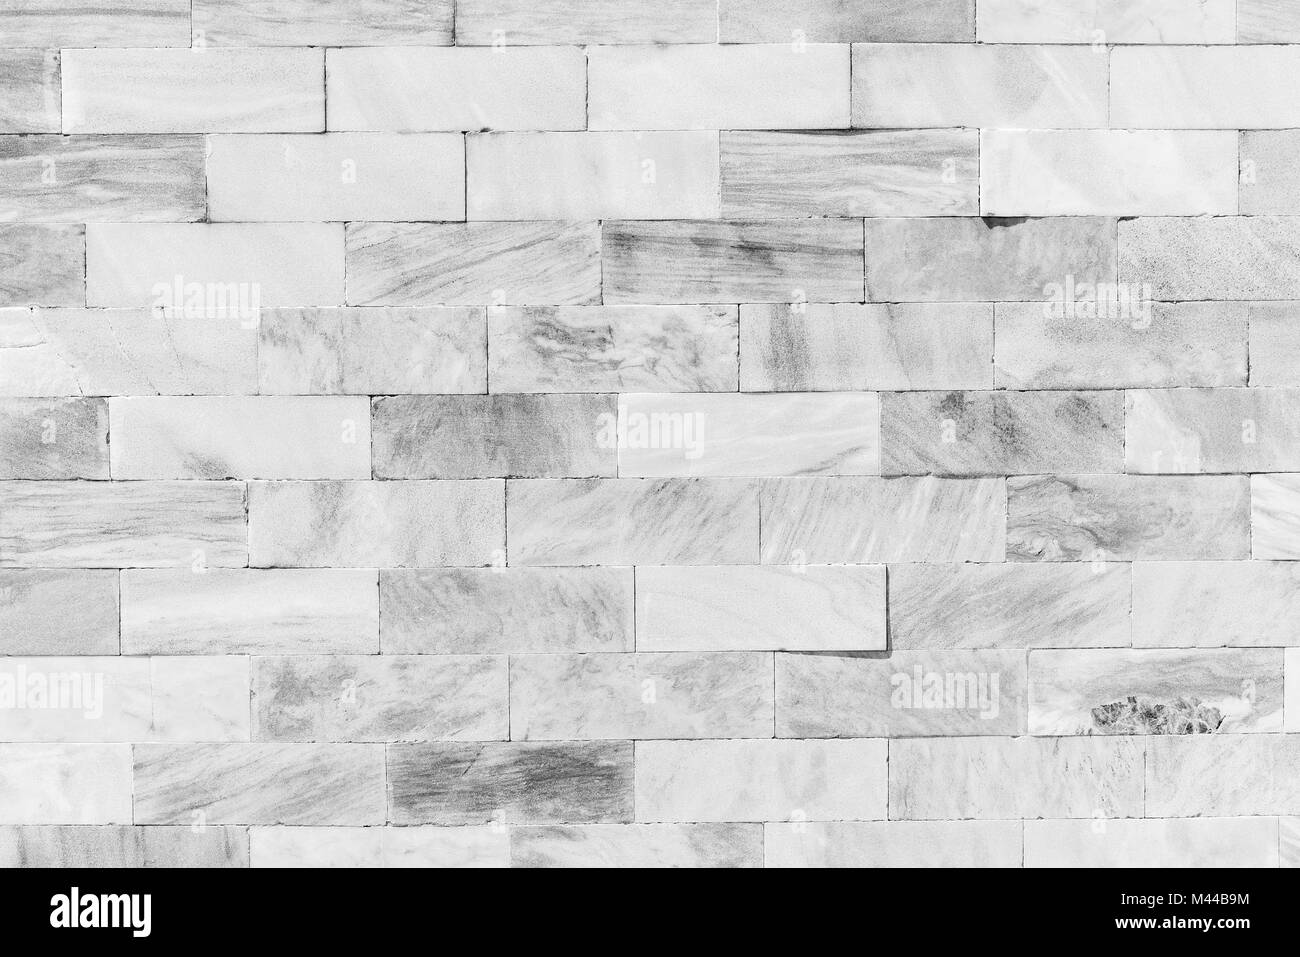 Bright Natural Marble Texture Pattern For Luxury White Background Modern Floor Or Wall Decoration Ready To Use Backdrop Design Art Work Websi